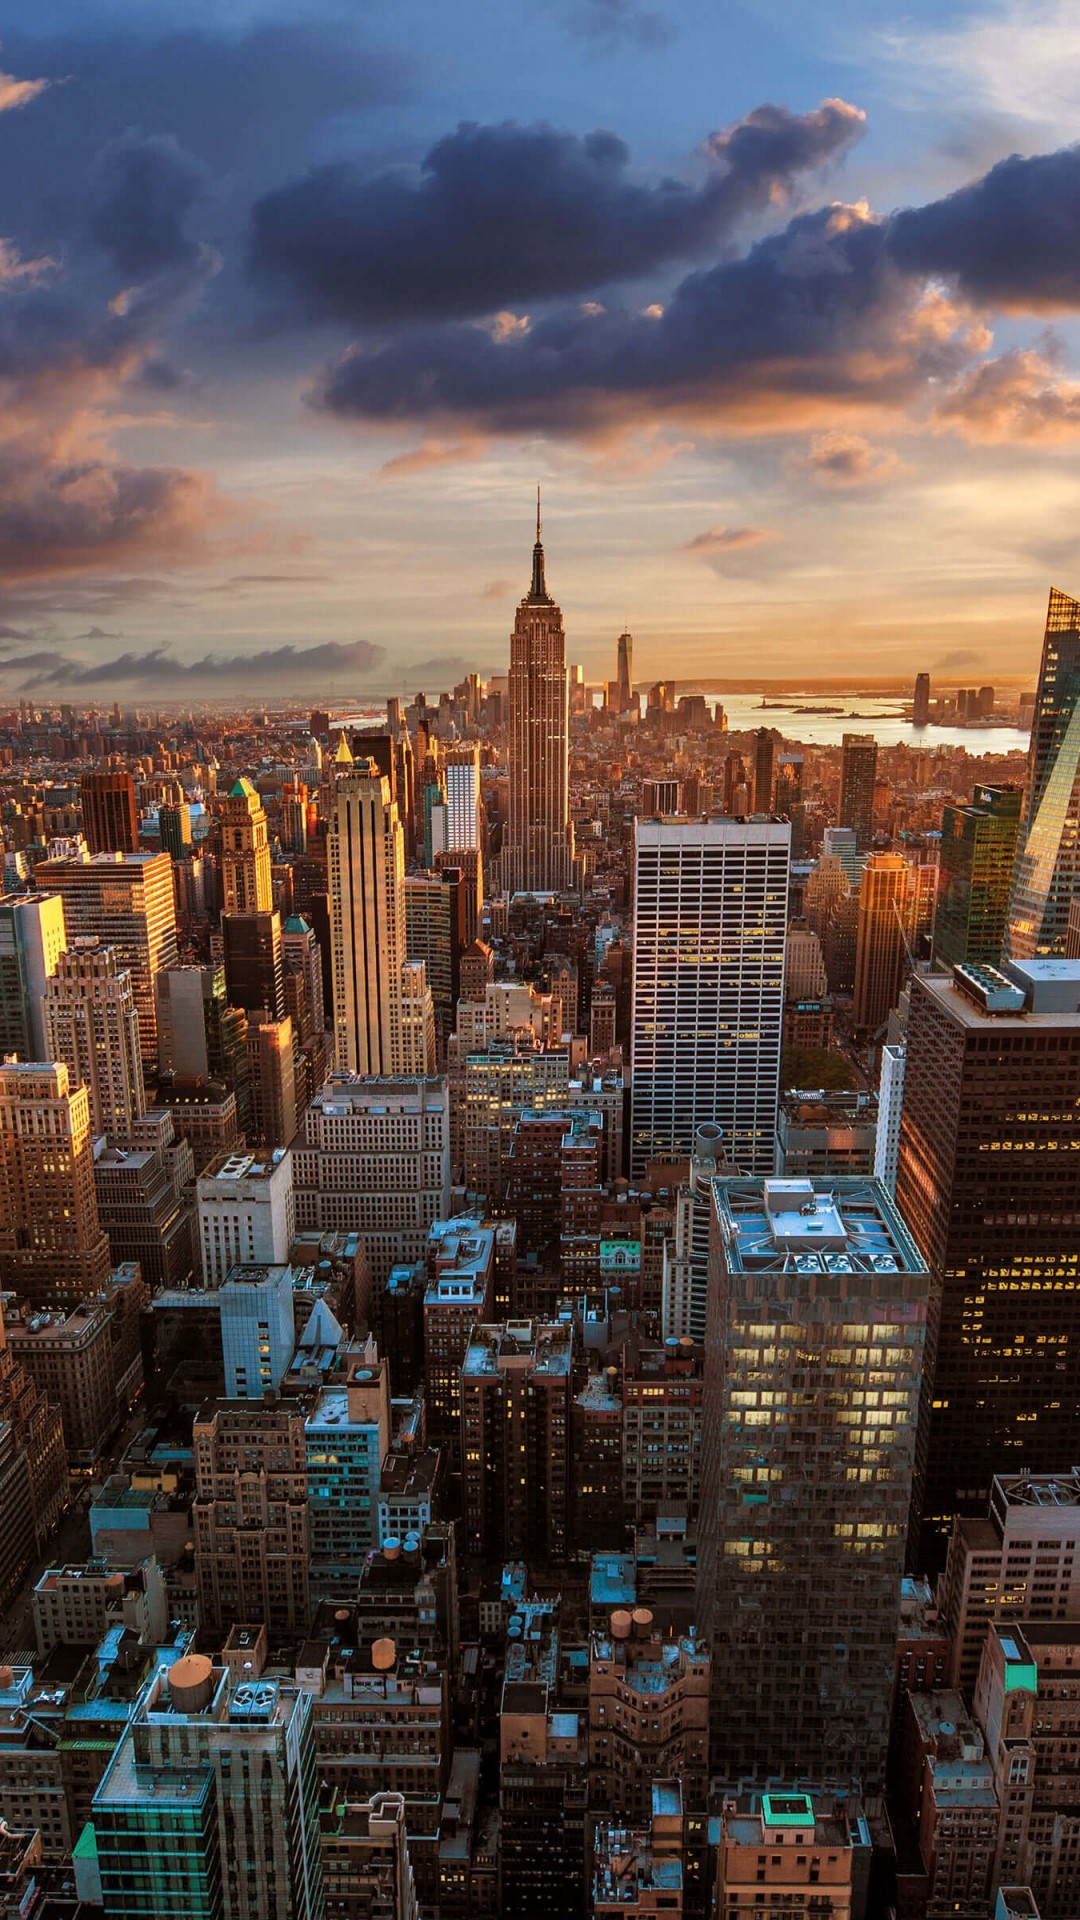 New York City Skyline At Sunset Wallpaper for SAMSUNG Galaxy S4